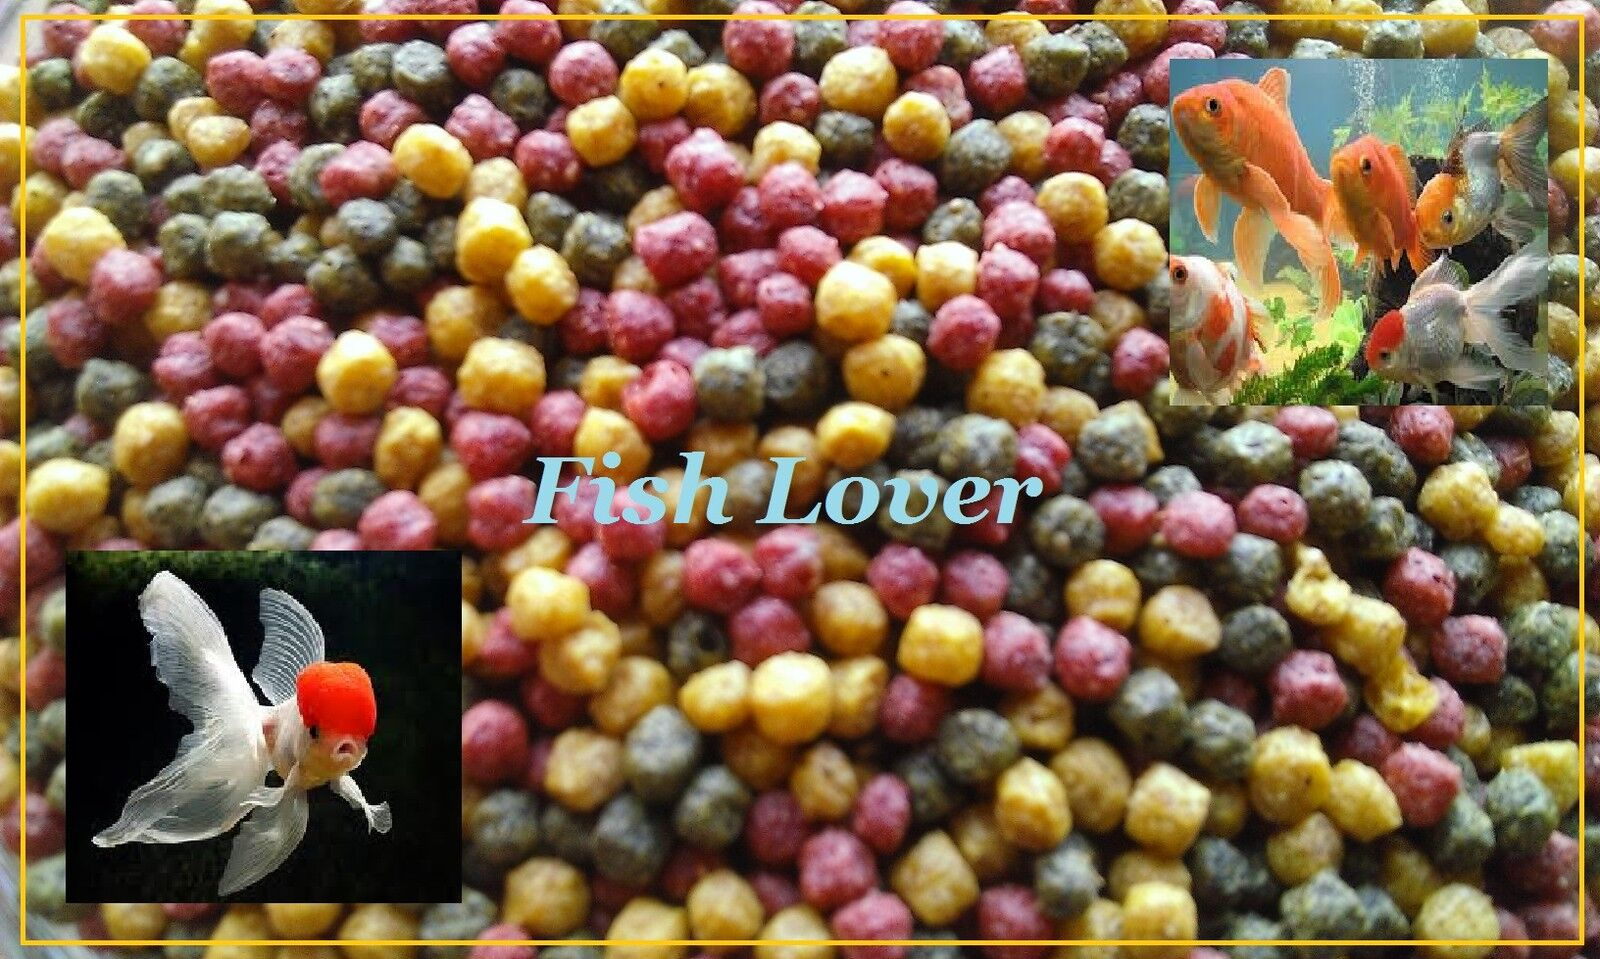 Top Quality&Value Mixed Colour Pellet, Food for Koi, goldFish,Pond fish Free P+P